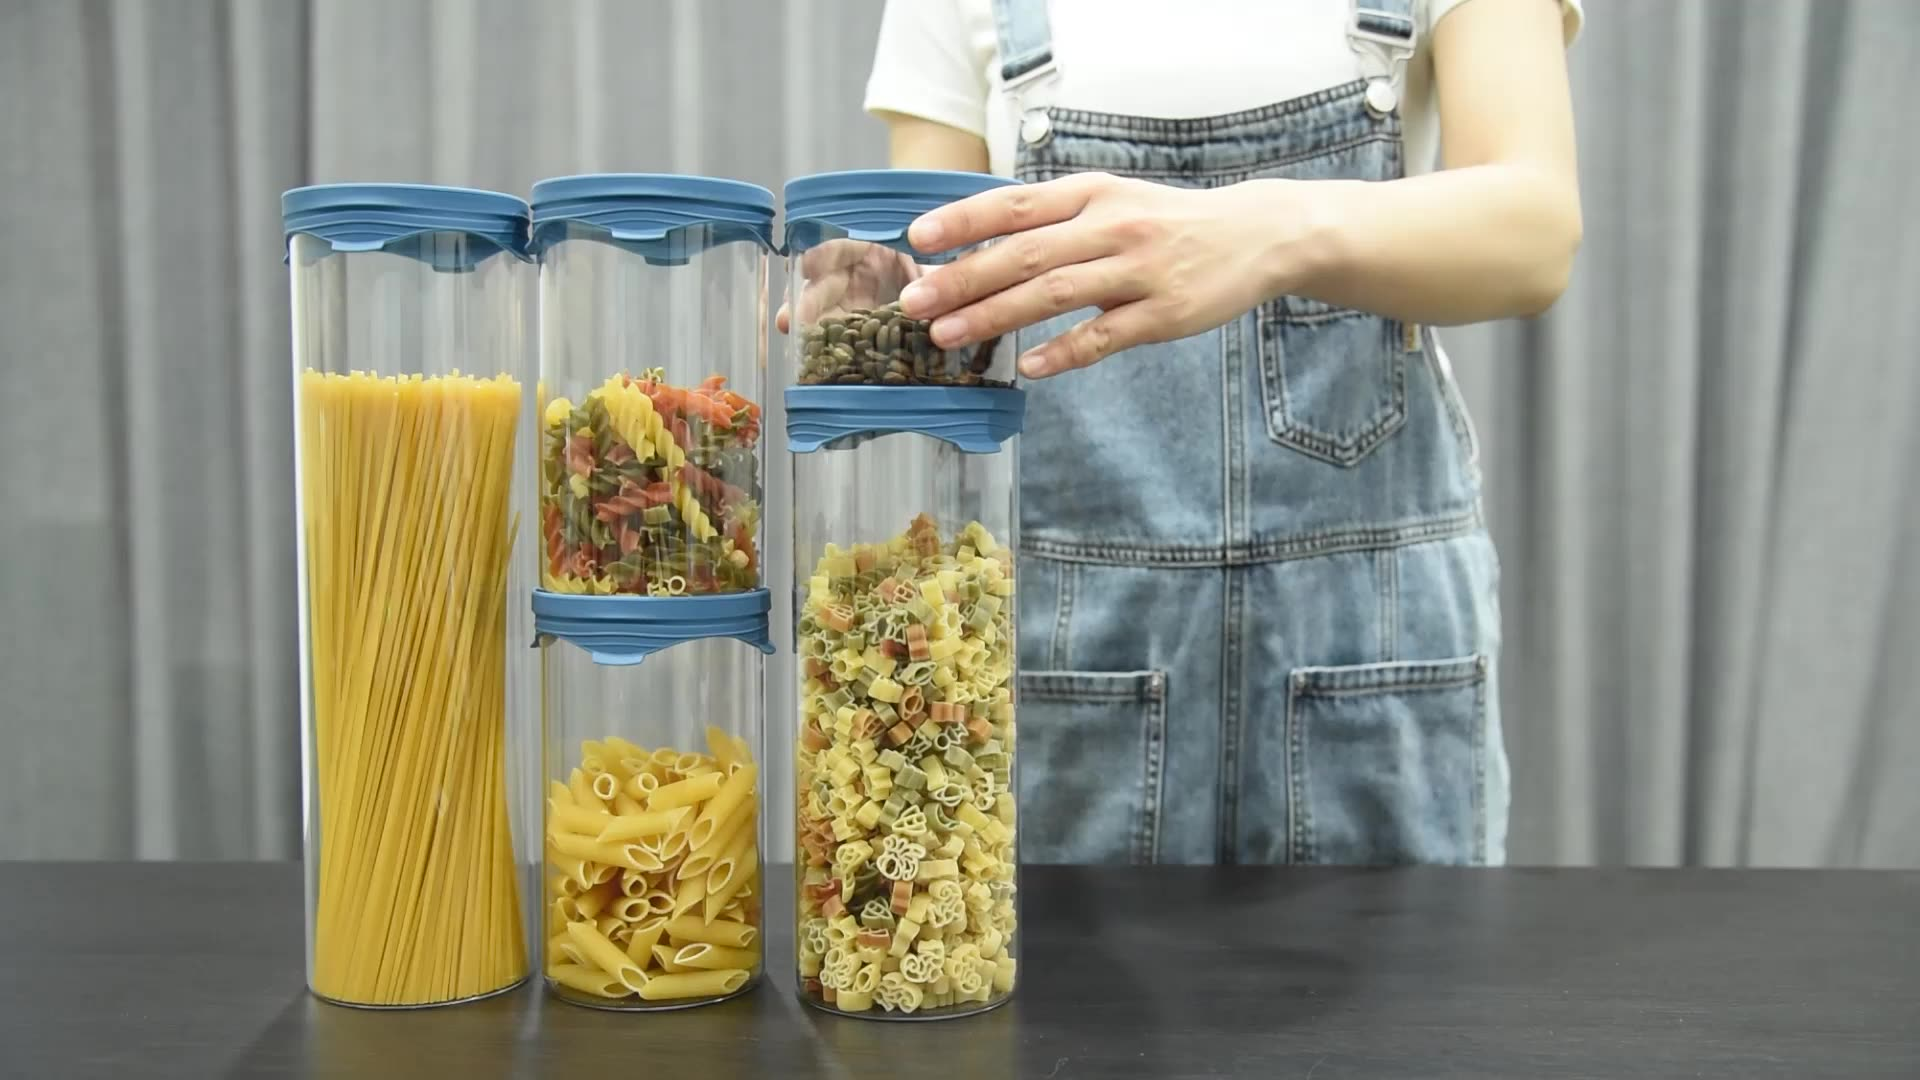 Airtight food storage fancy glass jars storage jar grain container food container